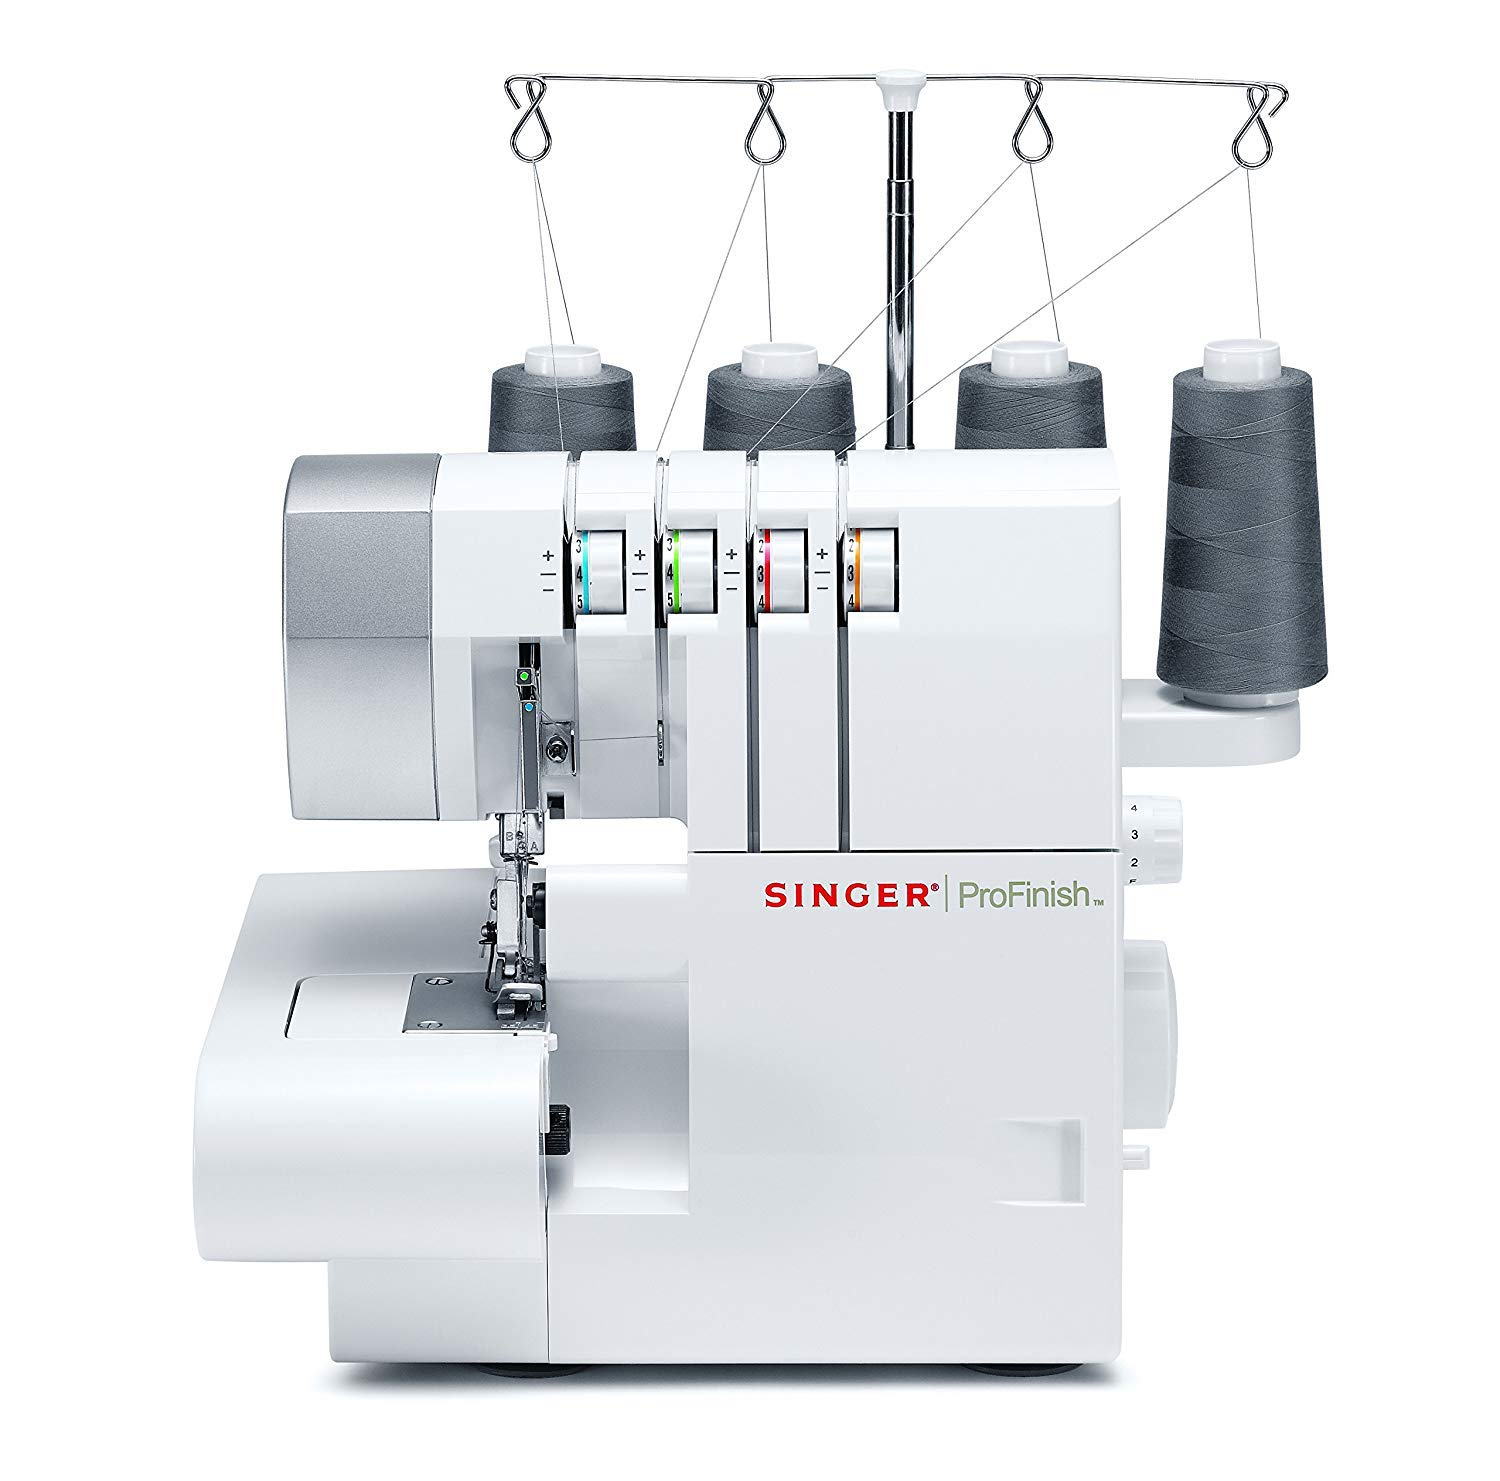 SINGER | ProFinish 14CG754 2-3-4 Thread Serger with Adjustable Stitch Length, & Differential Feed - Sewing Made Easy,White